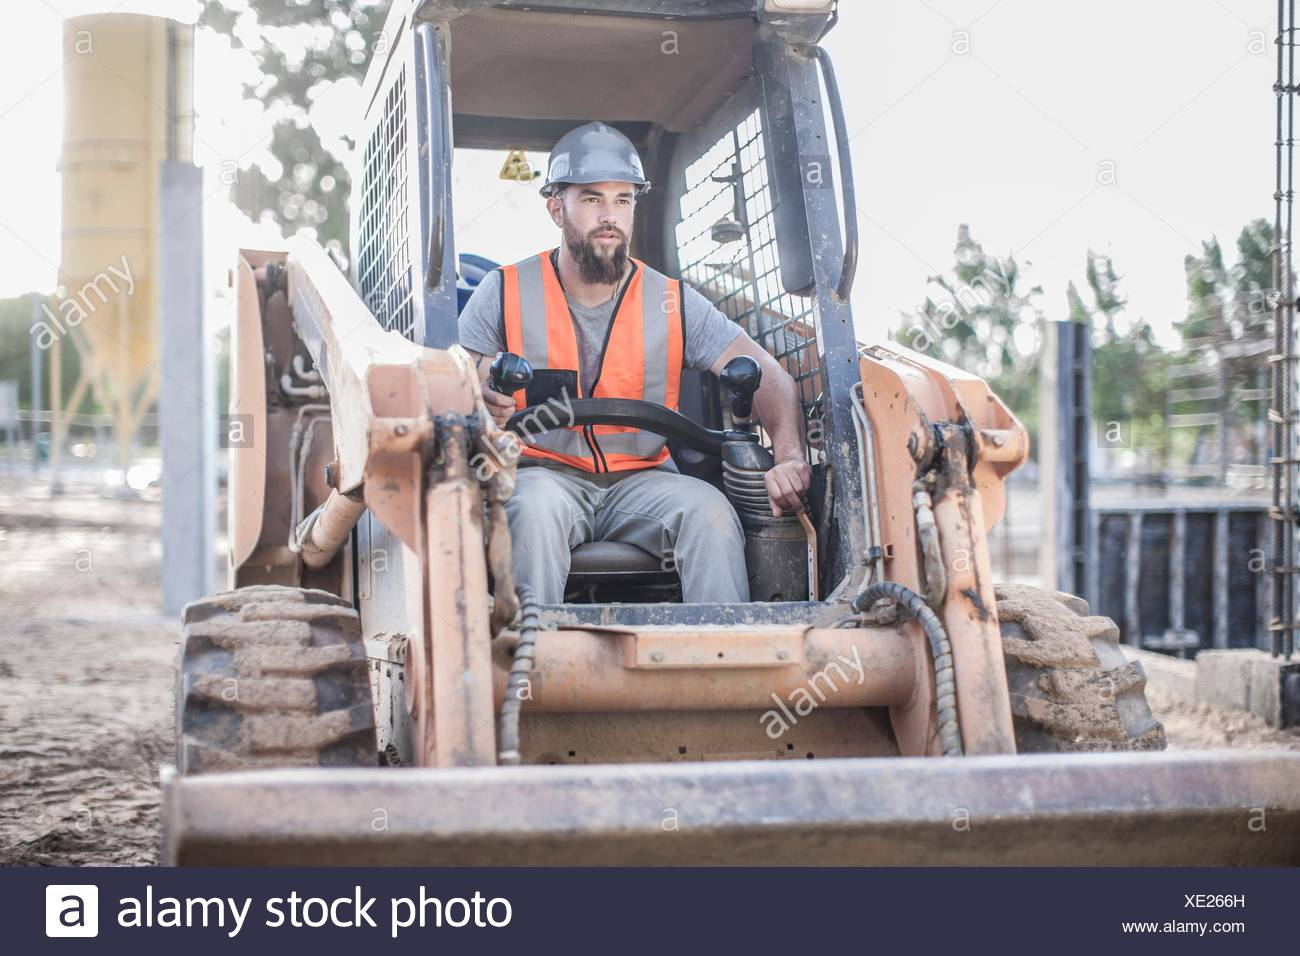 Builder driving excavator on construction site - Stock Image